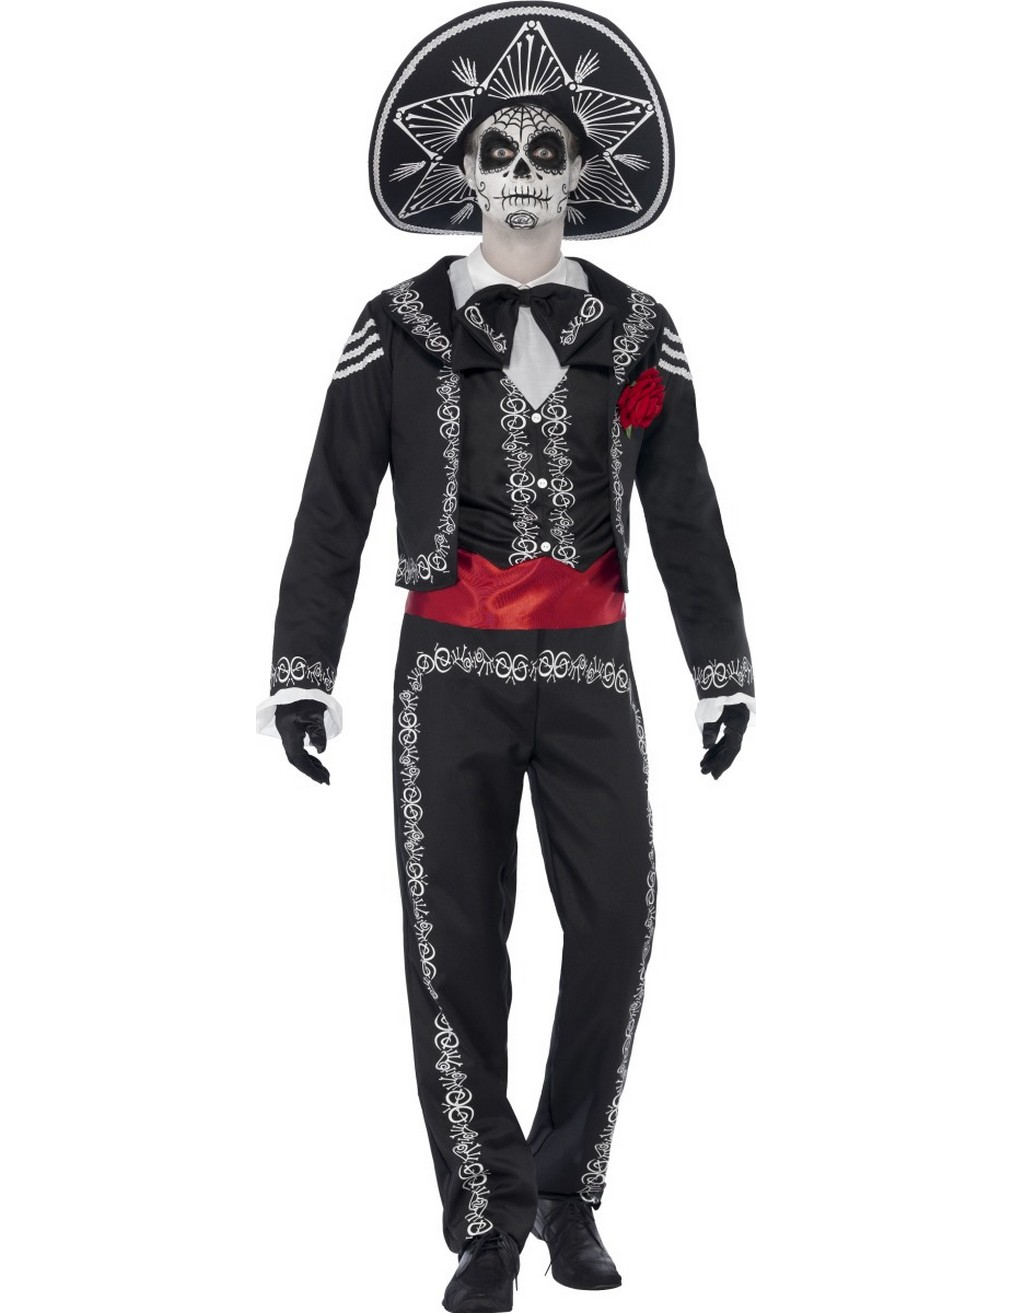 d guisement squelette mexicain homme dia de los muertos deguise toi achat de d guisements adultes. Black Bedroom Furniture Sets. Home Design Ideas